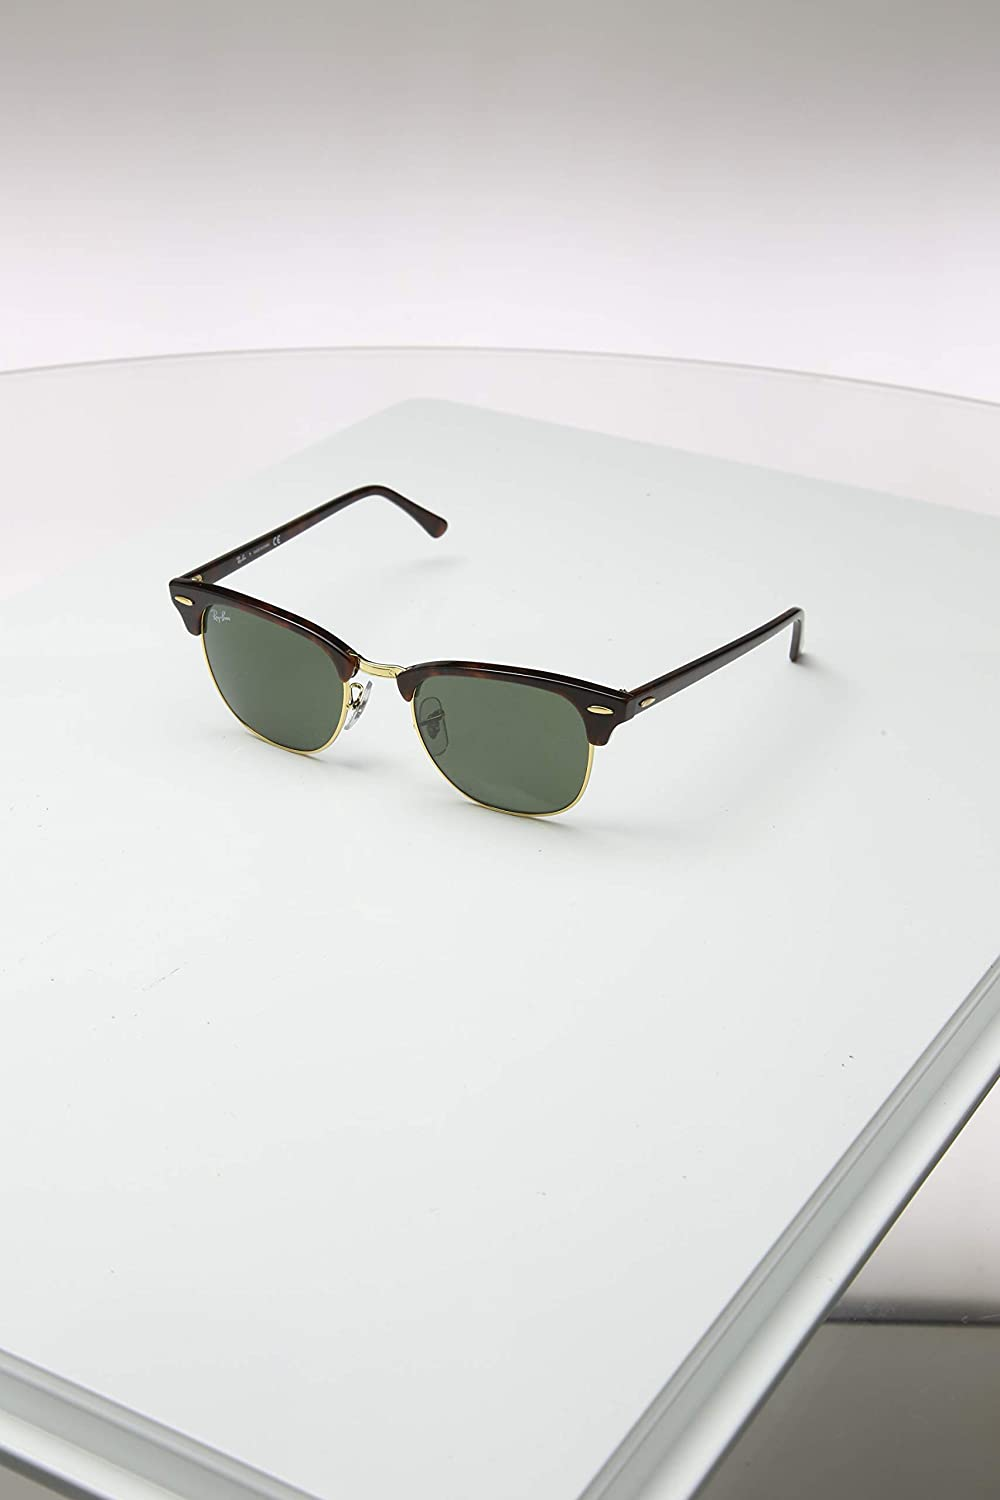 Amazon.com: Ray-Ban 0RB3016M Anteojos de sol estilo ...